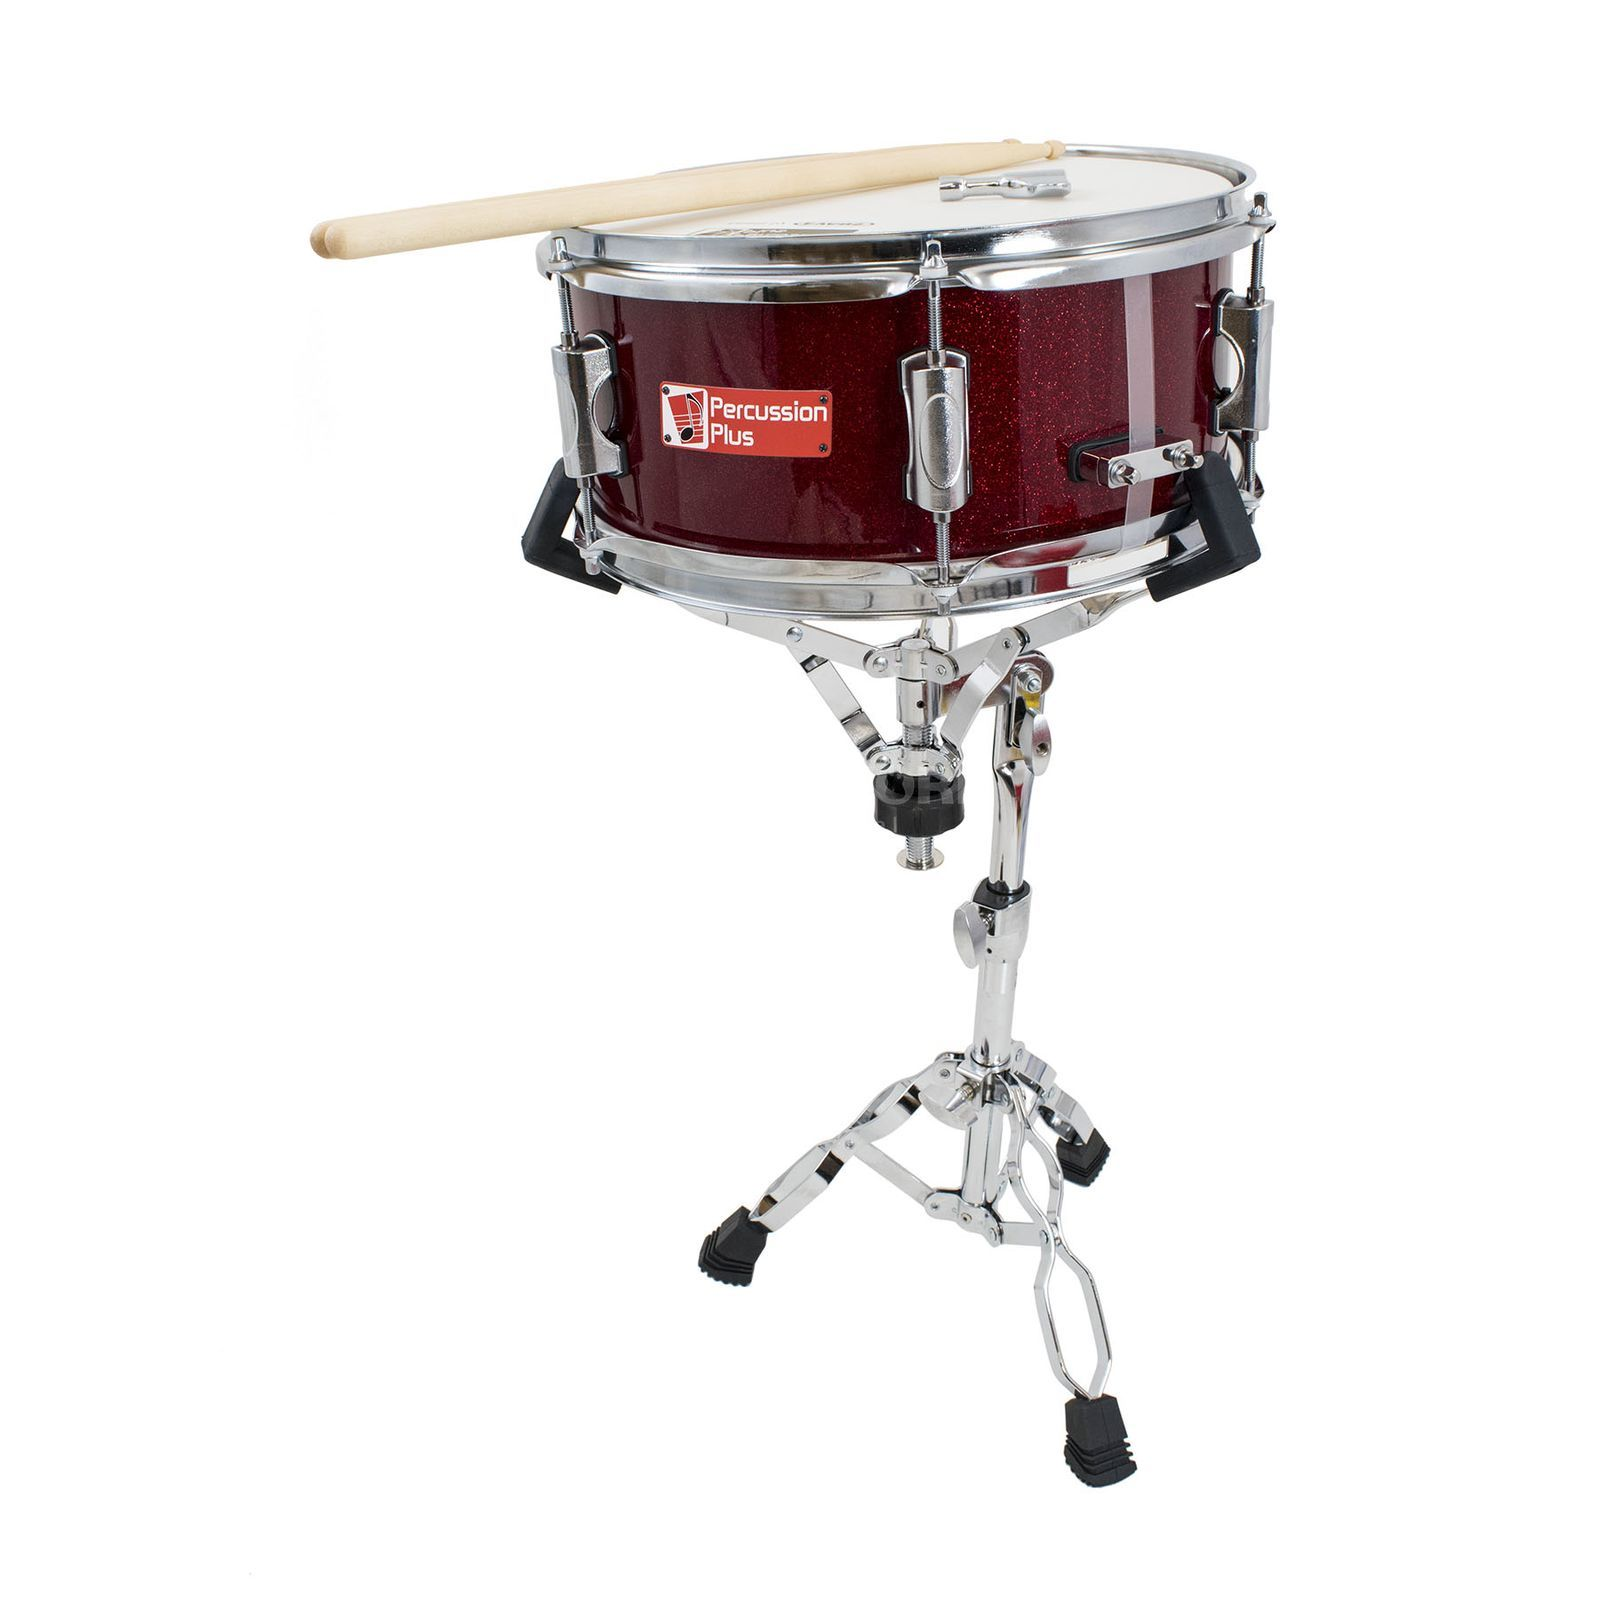 "Percussion Plus PP260 Junior Snare 12""x5,5"", inkl. Ständer, Sticks Produktbild"